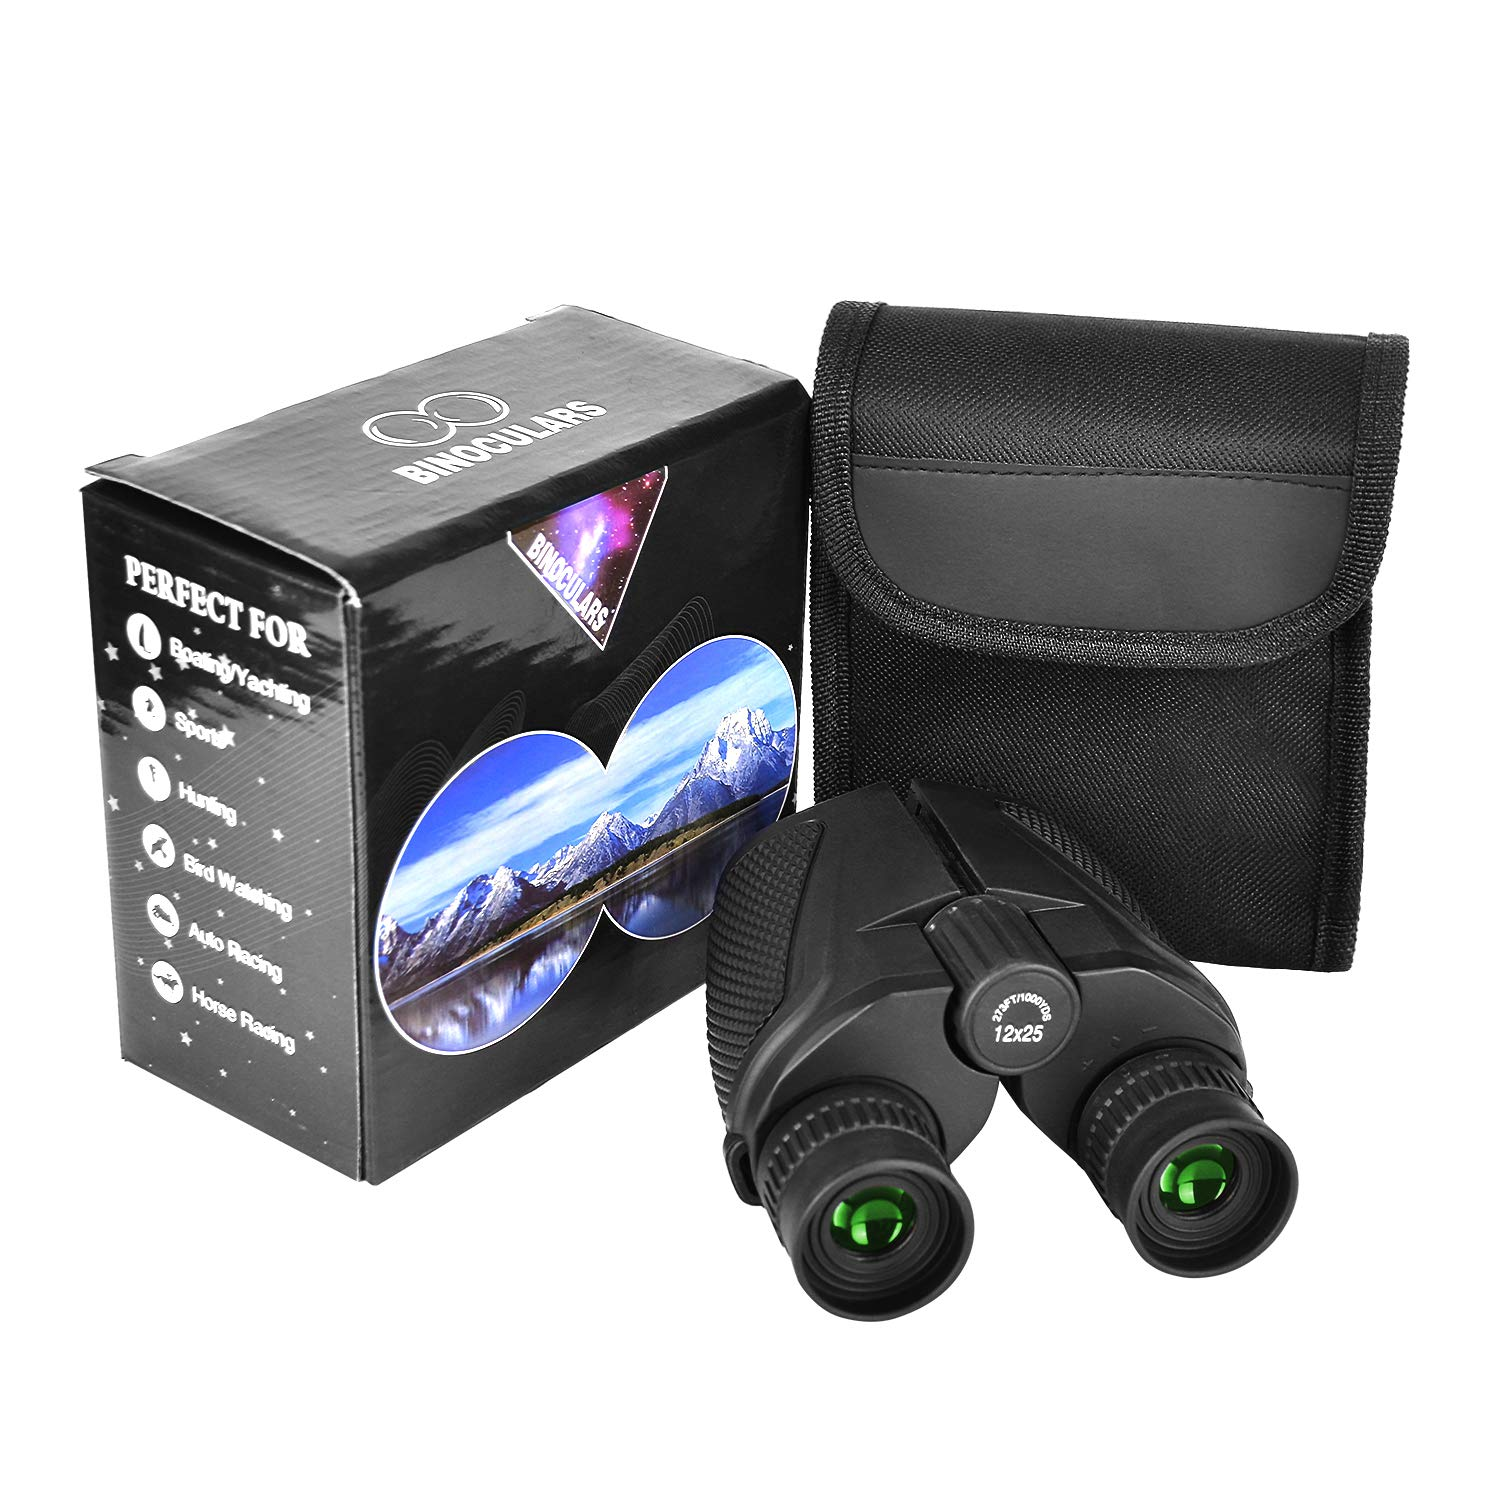 RONHAN Compact Binoculars for Adults Kids,12x25 Small Folding High Power Binoculars Waterproof/Fogproof Telescope with Low Night Vision HD BAK4 for Bird Watching, Hunting, Theater, Concerts, Sports by RONHAN